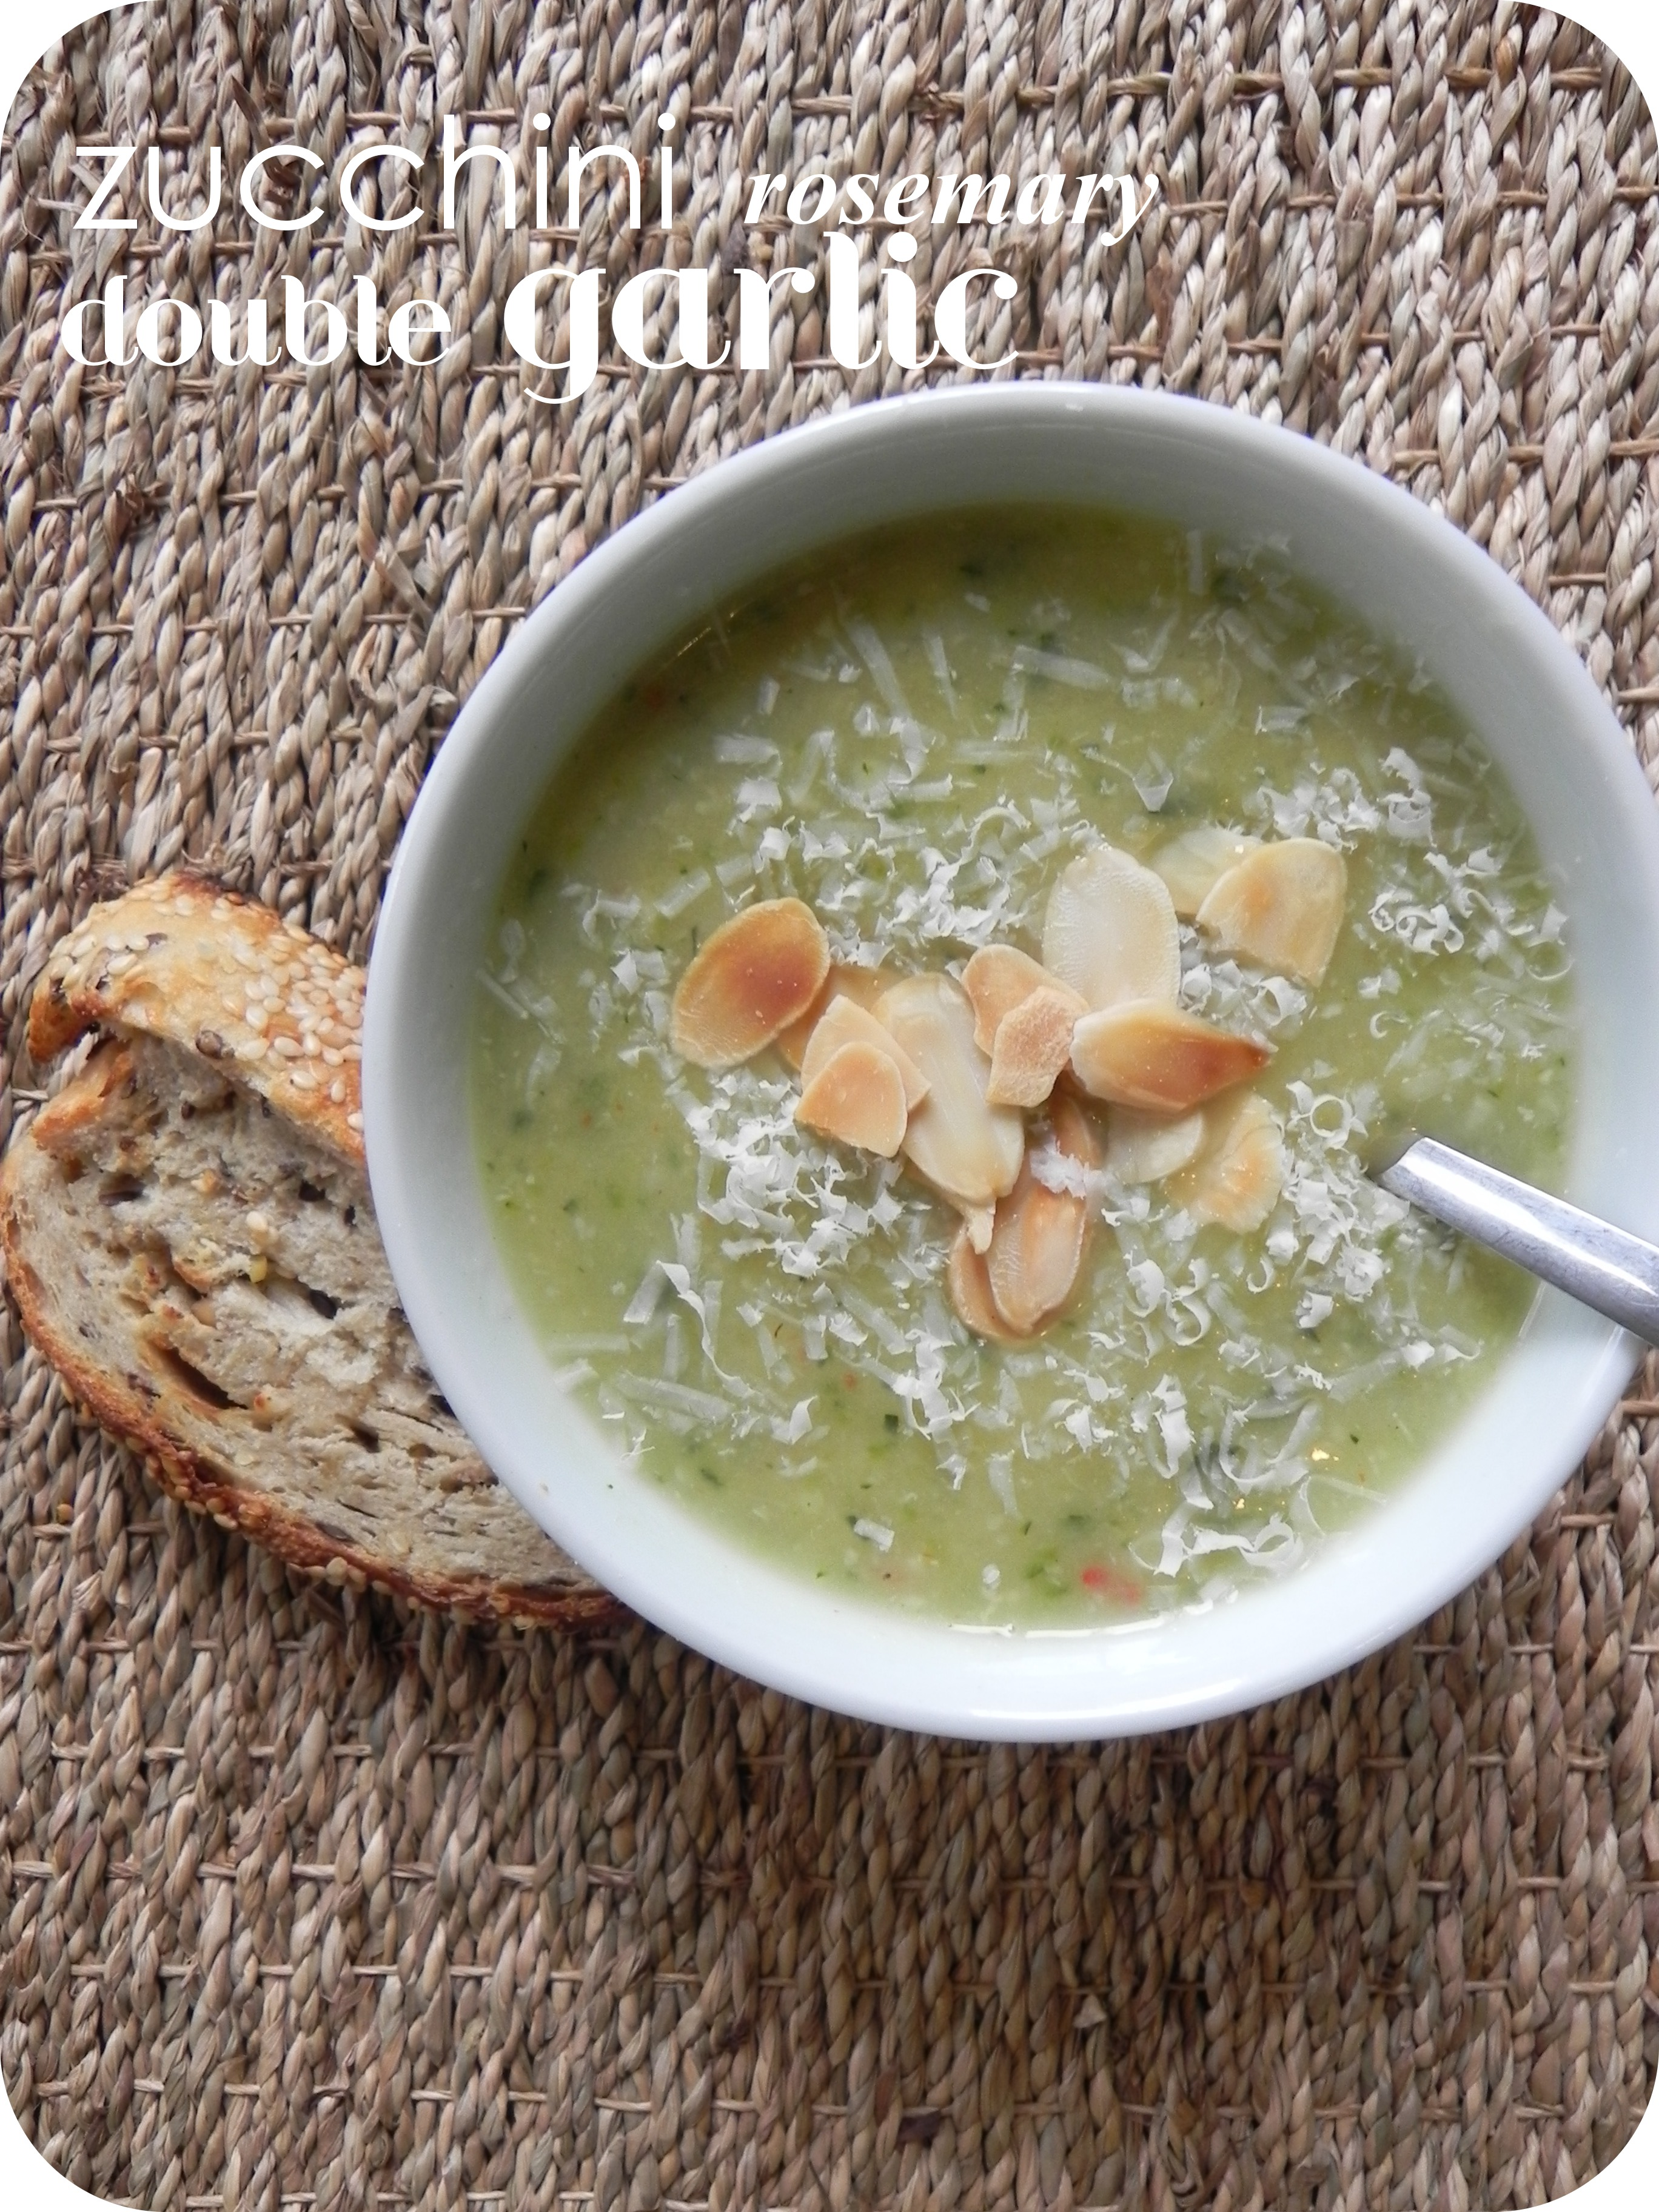 Zucchini, Garlic and Rosemary Soup | VORACIOUS VEGGIE